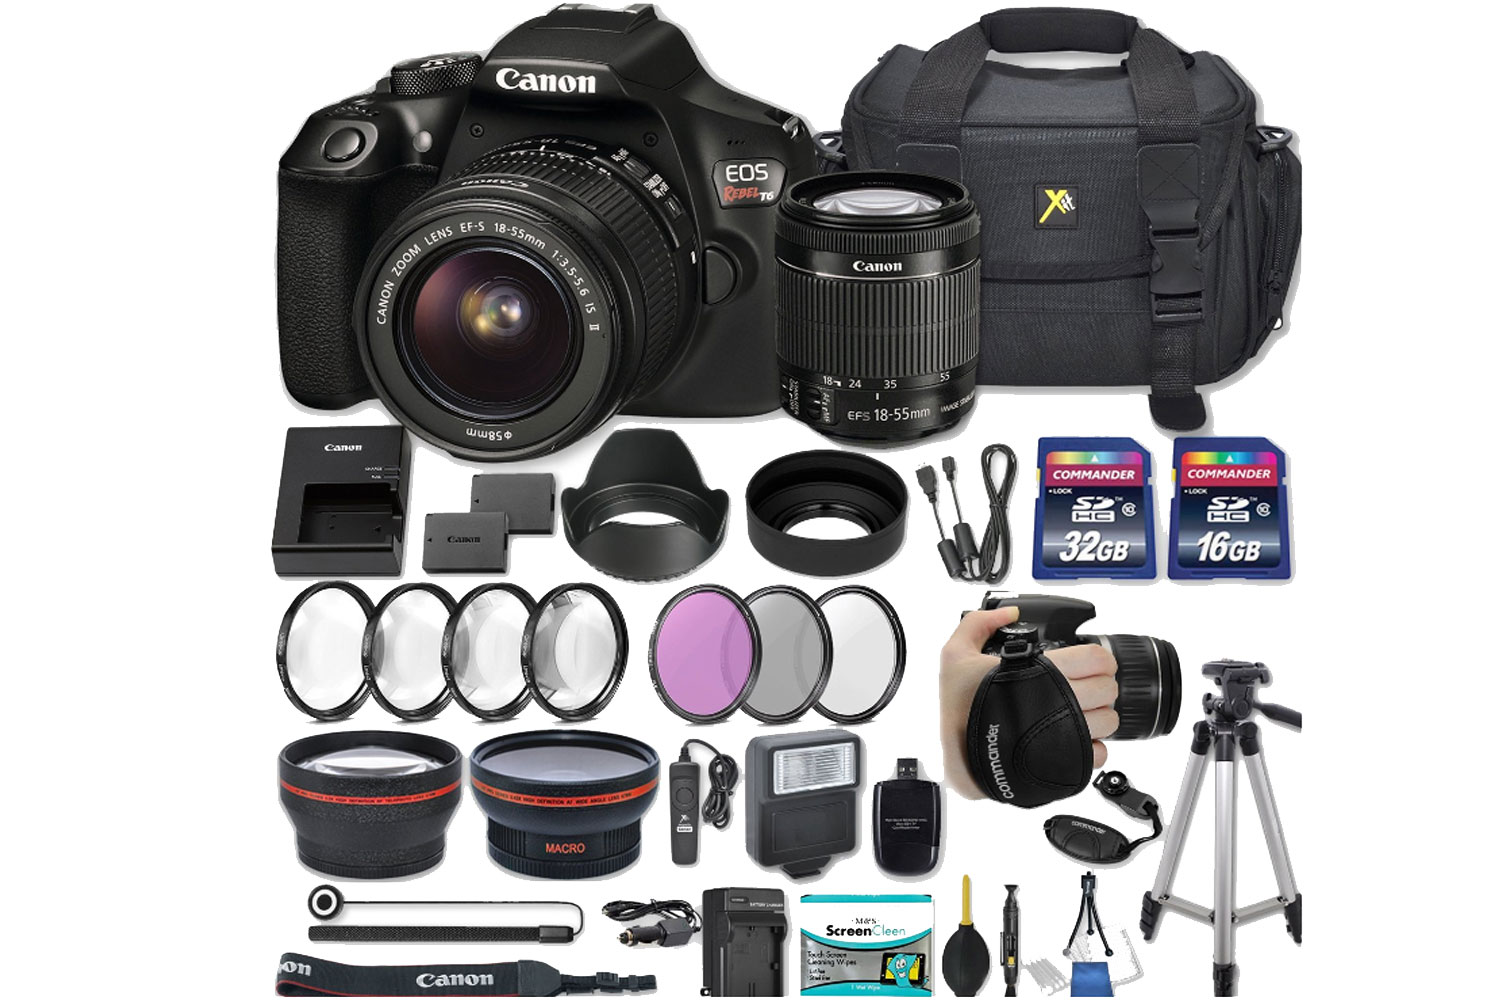 Canon-EOS-Rebel-T6-DSLR-Camera-web.jpg